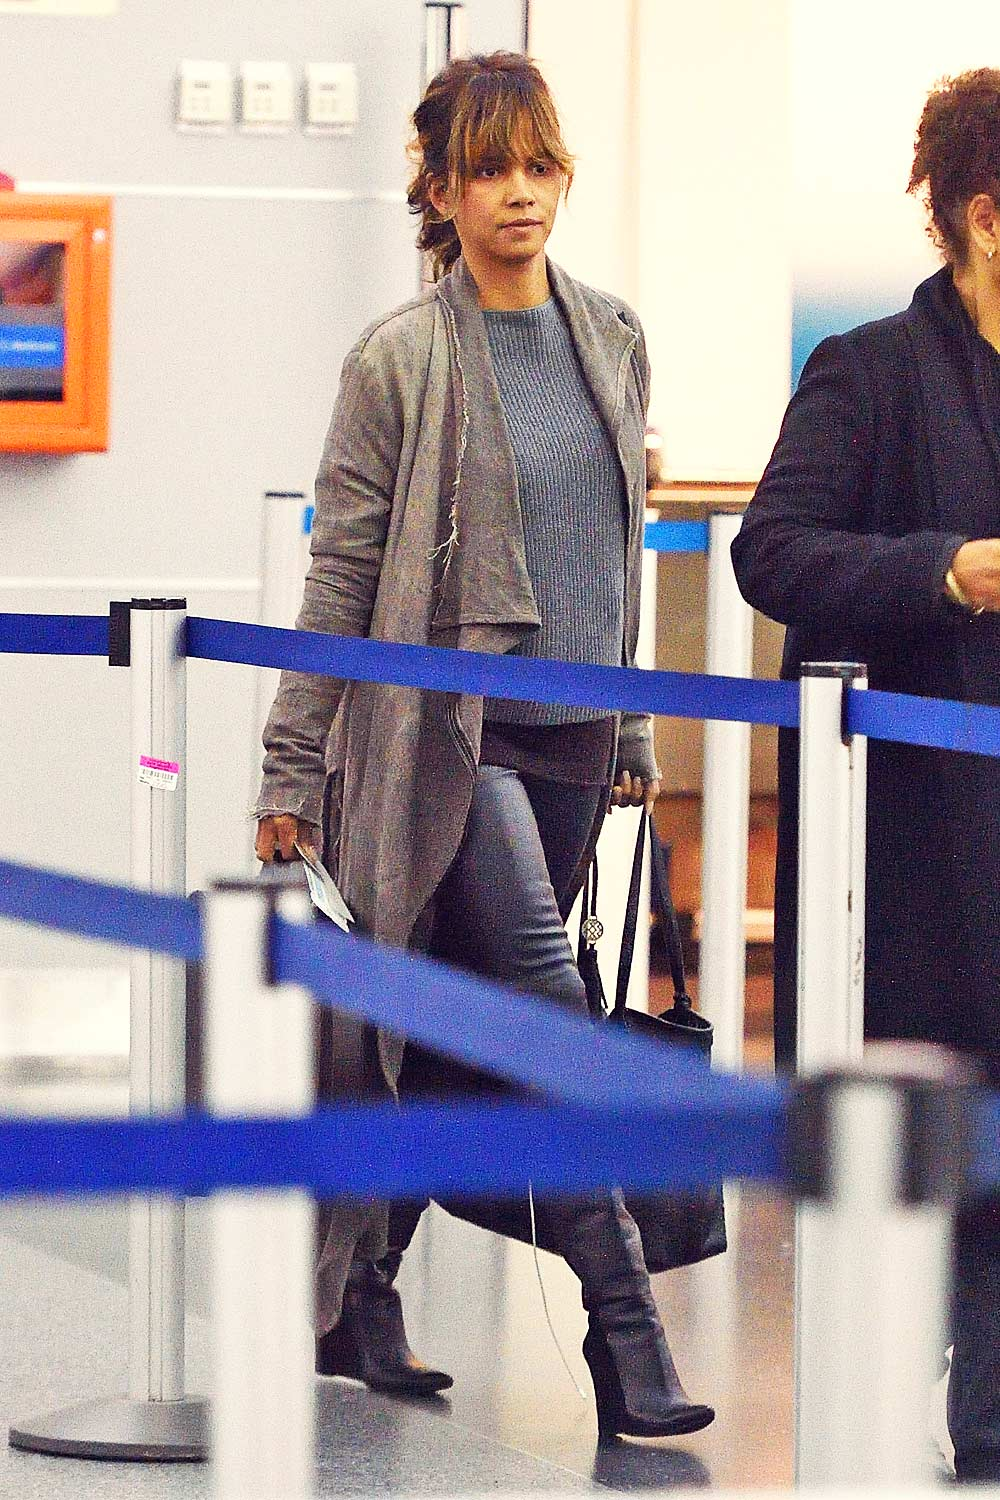 Halle Berry arrives to catch a flight at JFK airport